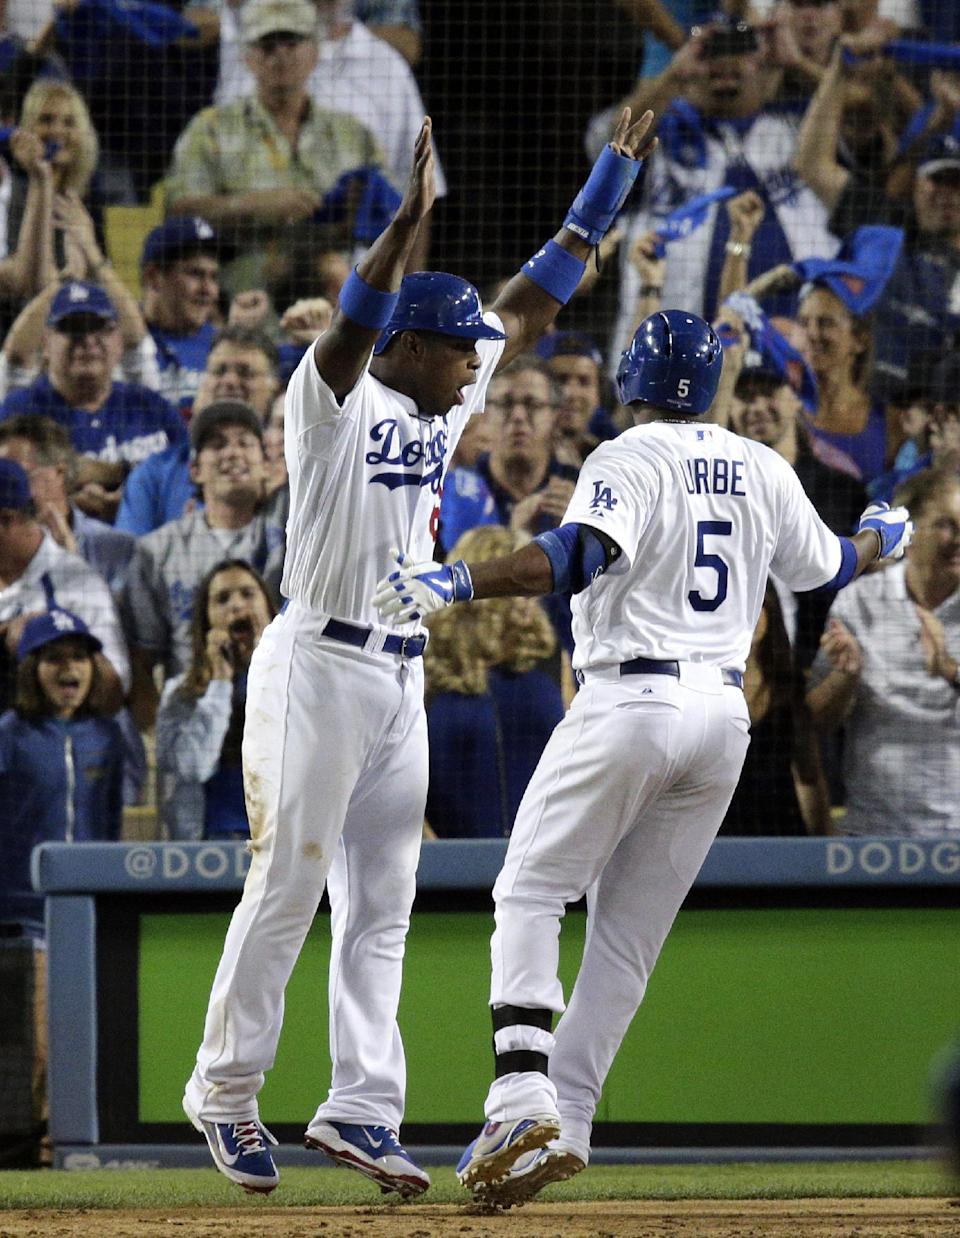 Dodgers rout Braves 13-6 to take 2-1 lead in NLDS